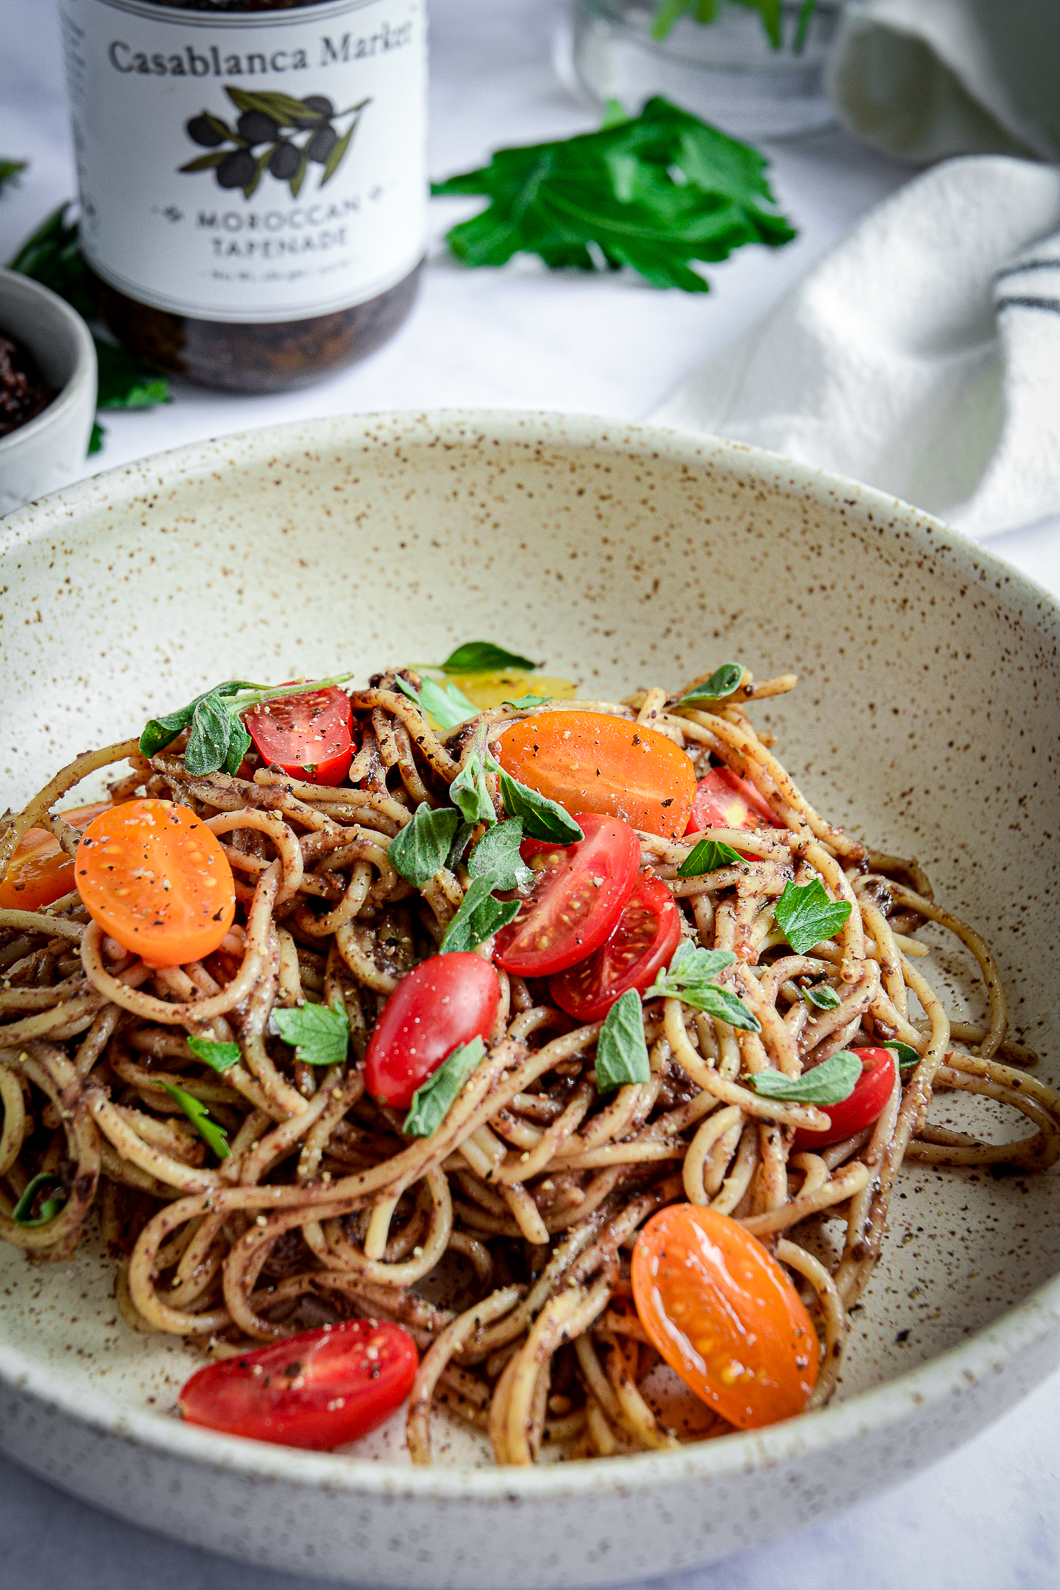 Moroccan Tapenade Spaghetti with Tomatoes and Herbs with herbs and jar of tapenade